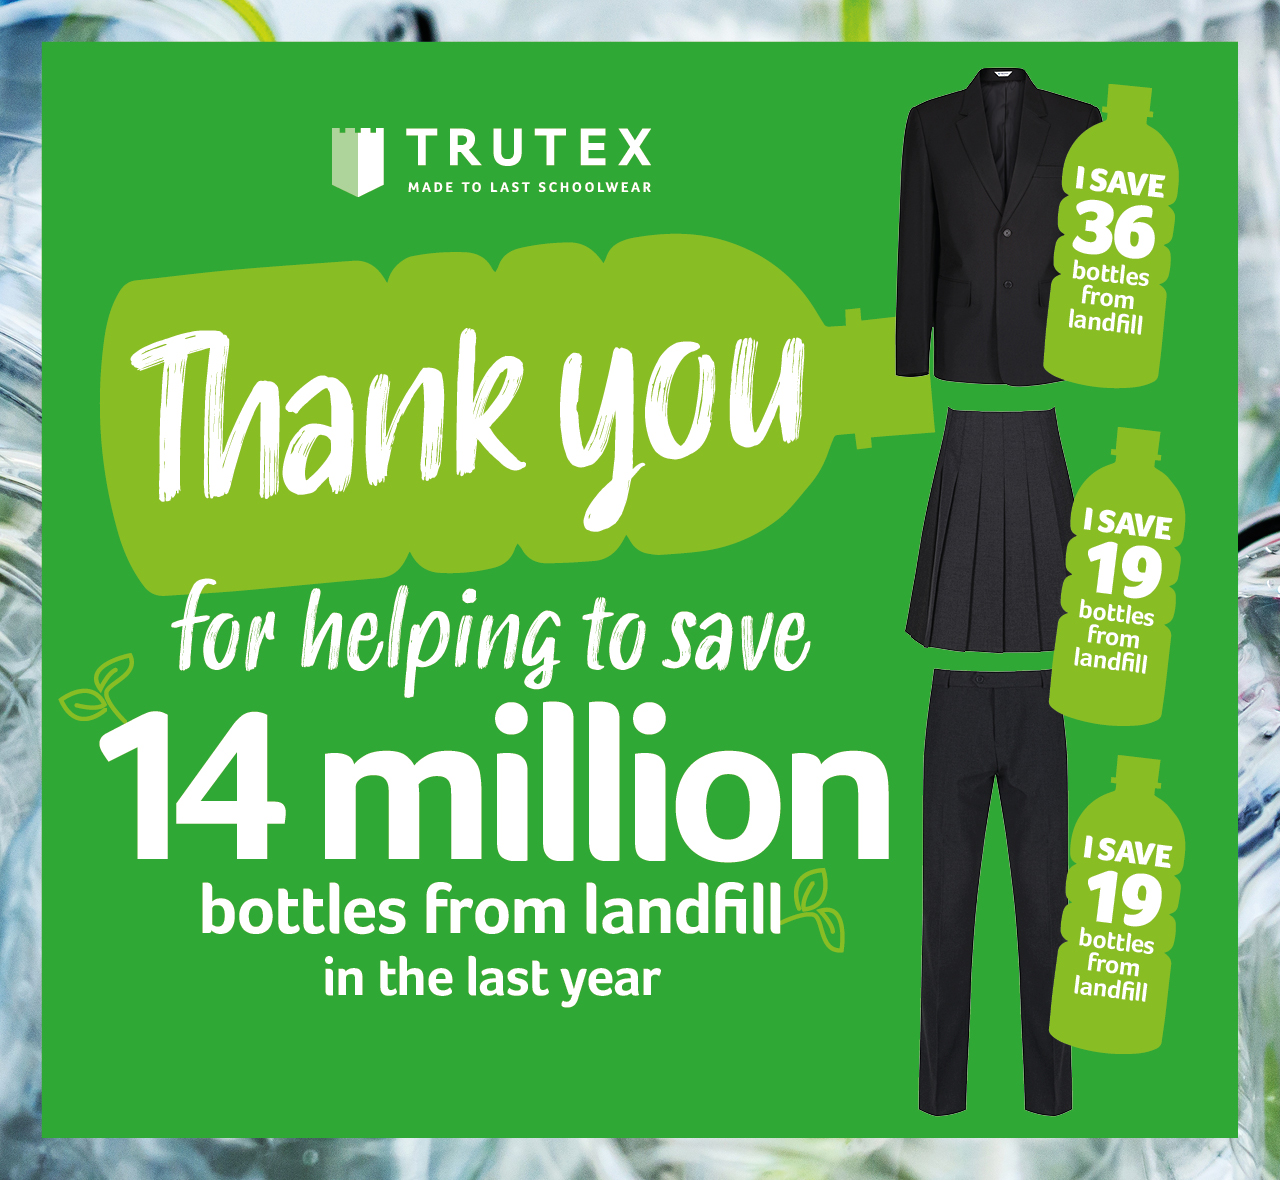 Thank you for helping to save 14 million plastic bottles from landfill